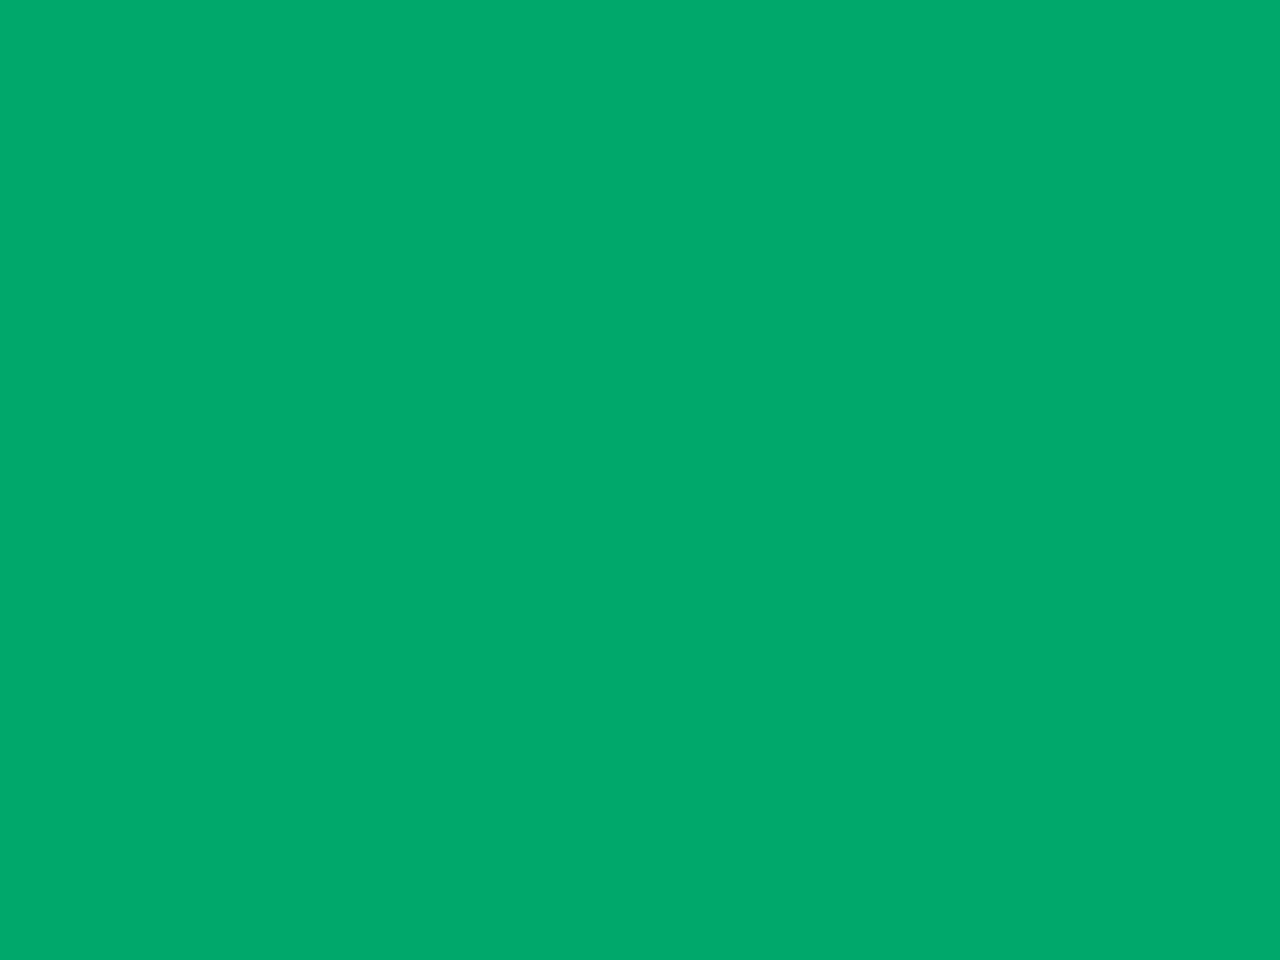 1280x960 Jade Solid Color Background